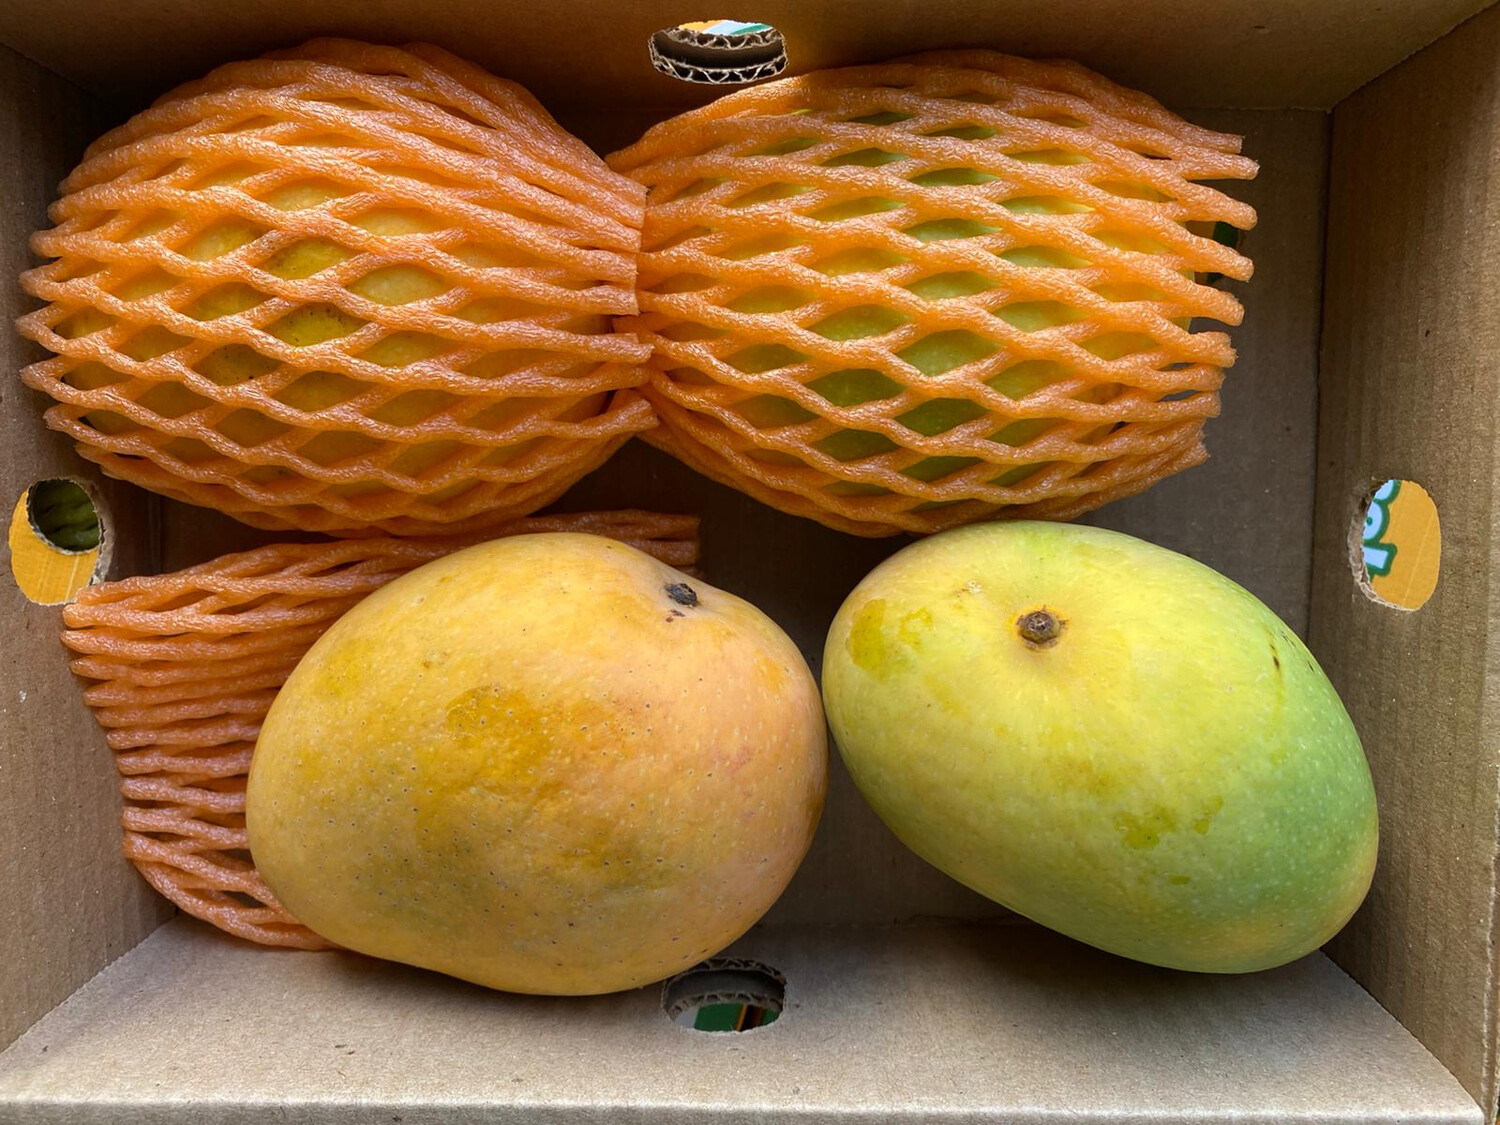 FRESH INDIAN BANGANAPALLI (BADAMI) MANGO 1,3 - 1,5KG